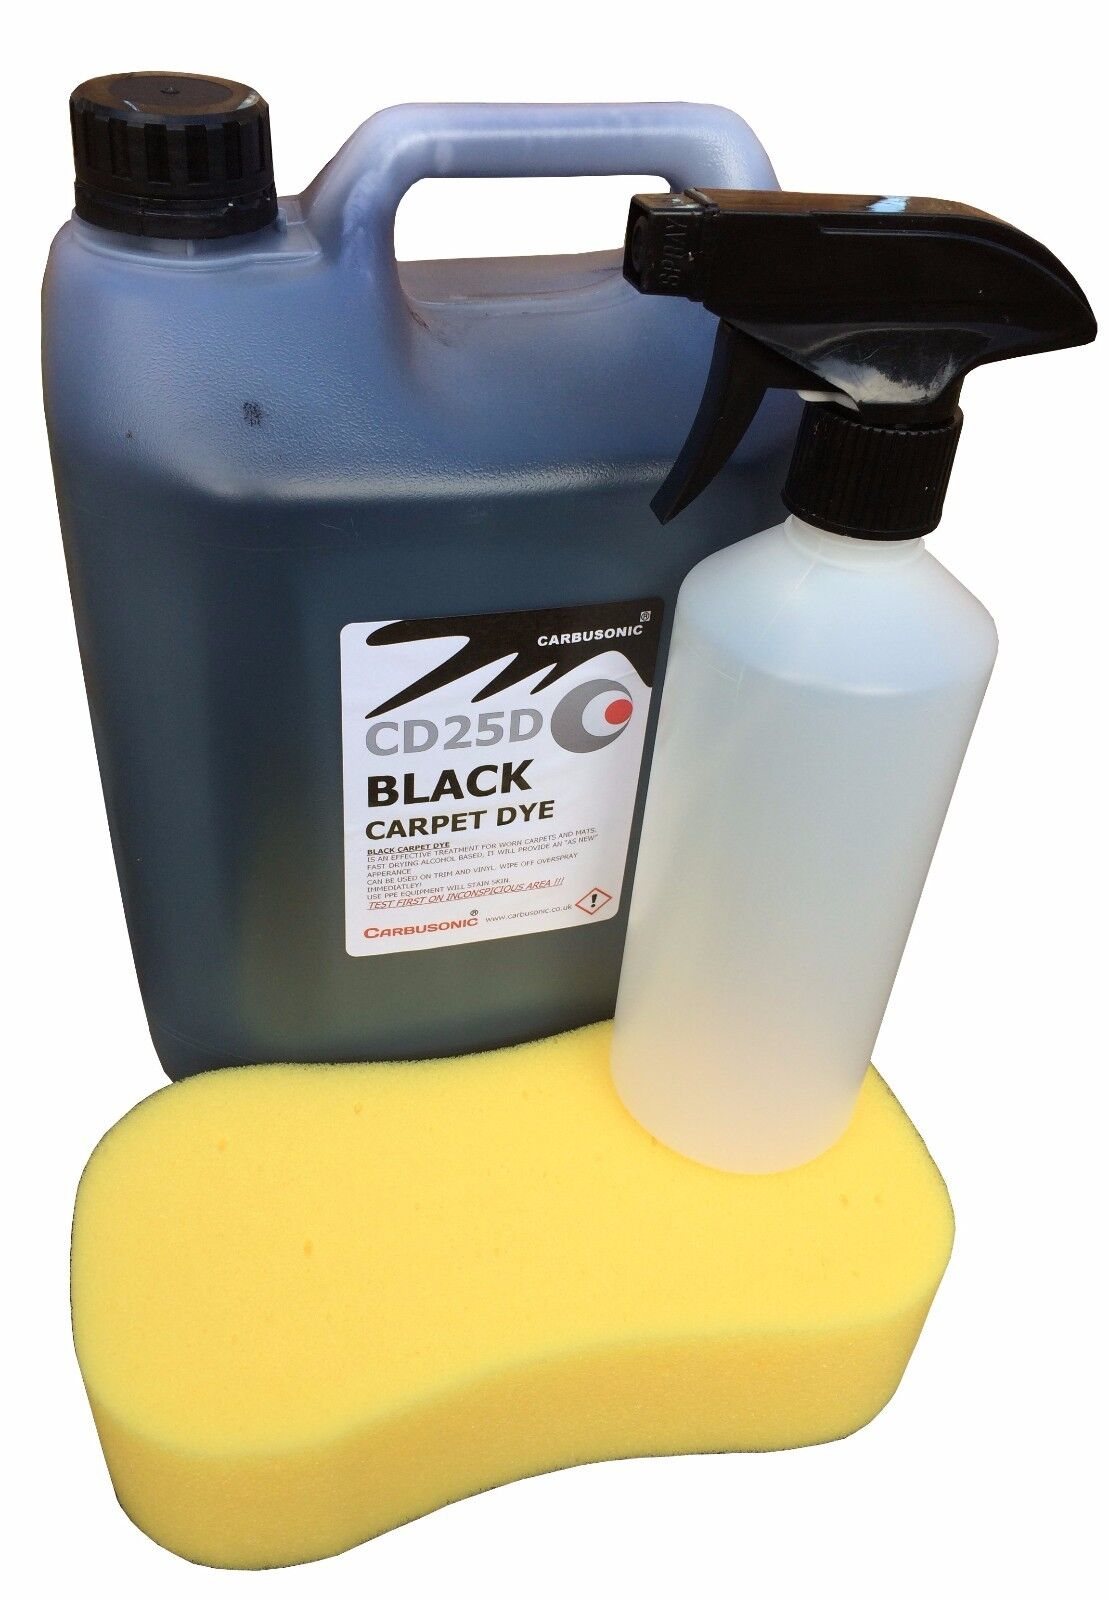 5 litre black carpet dye with trigger spray & sponge, car carpet renovation.